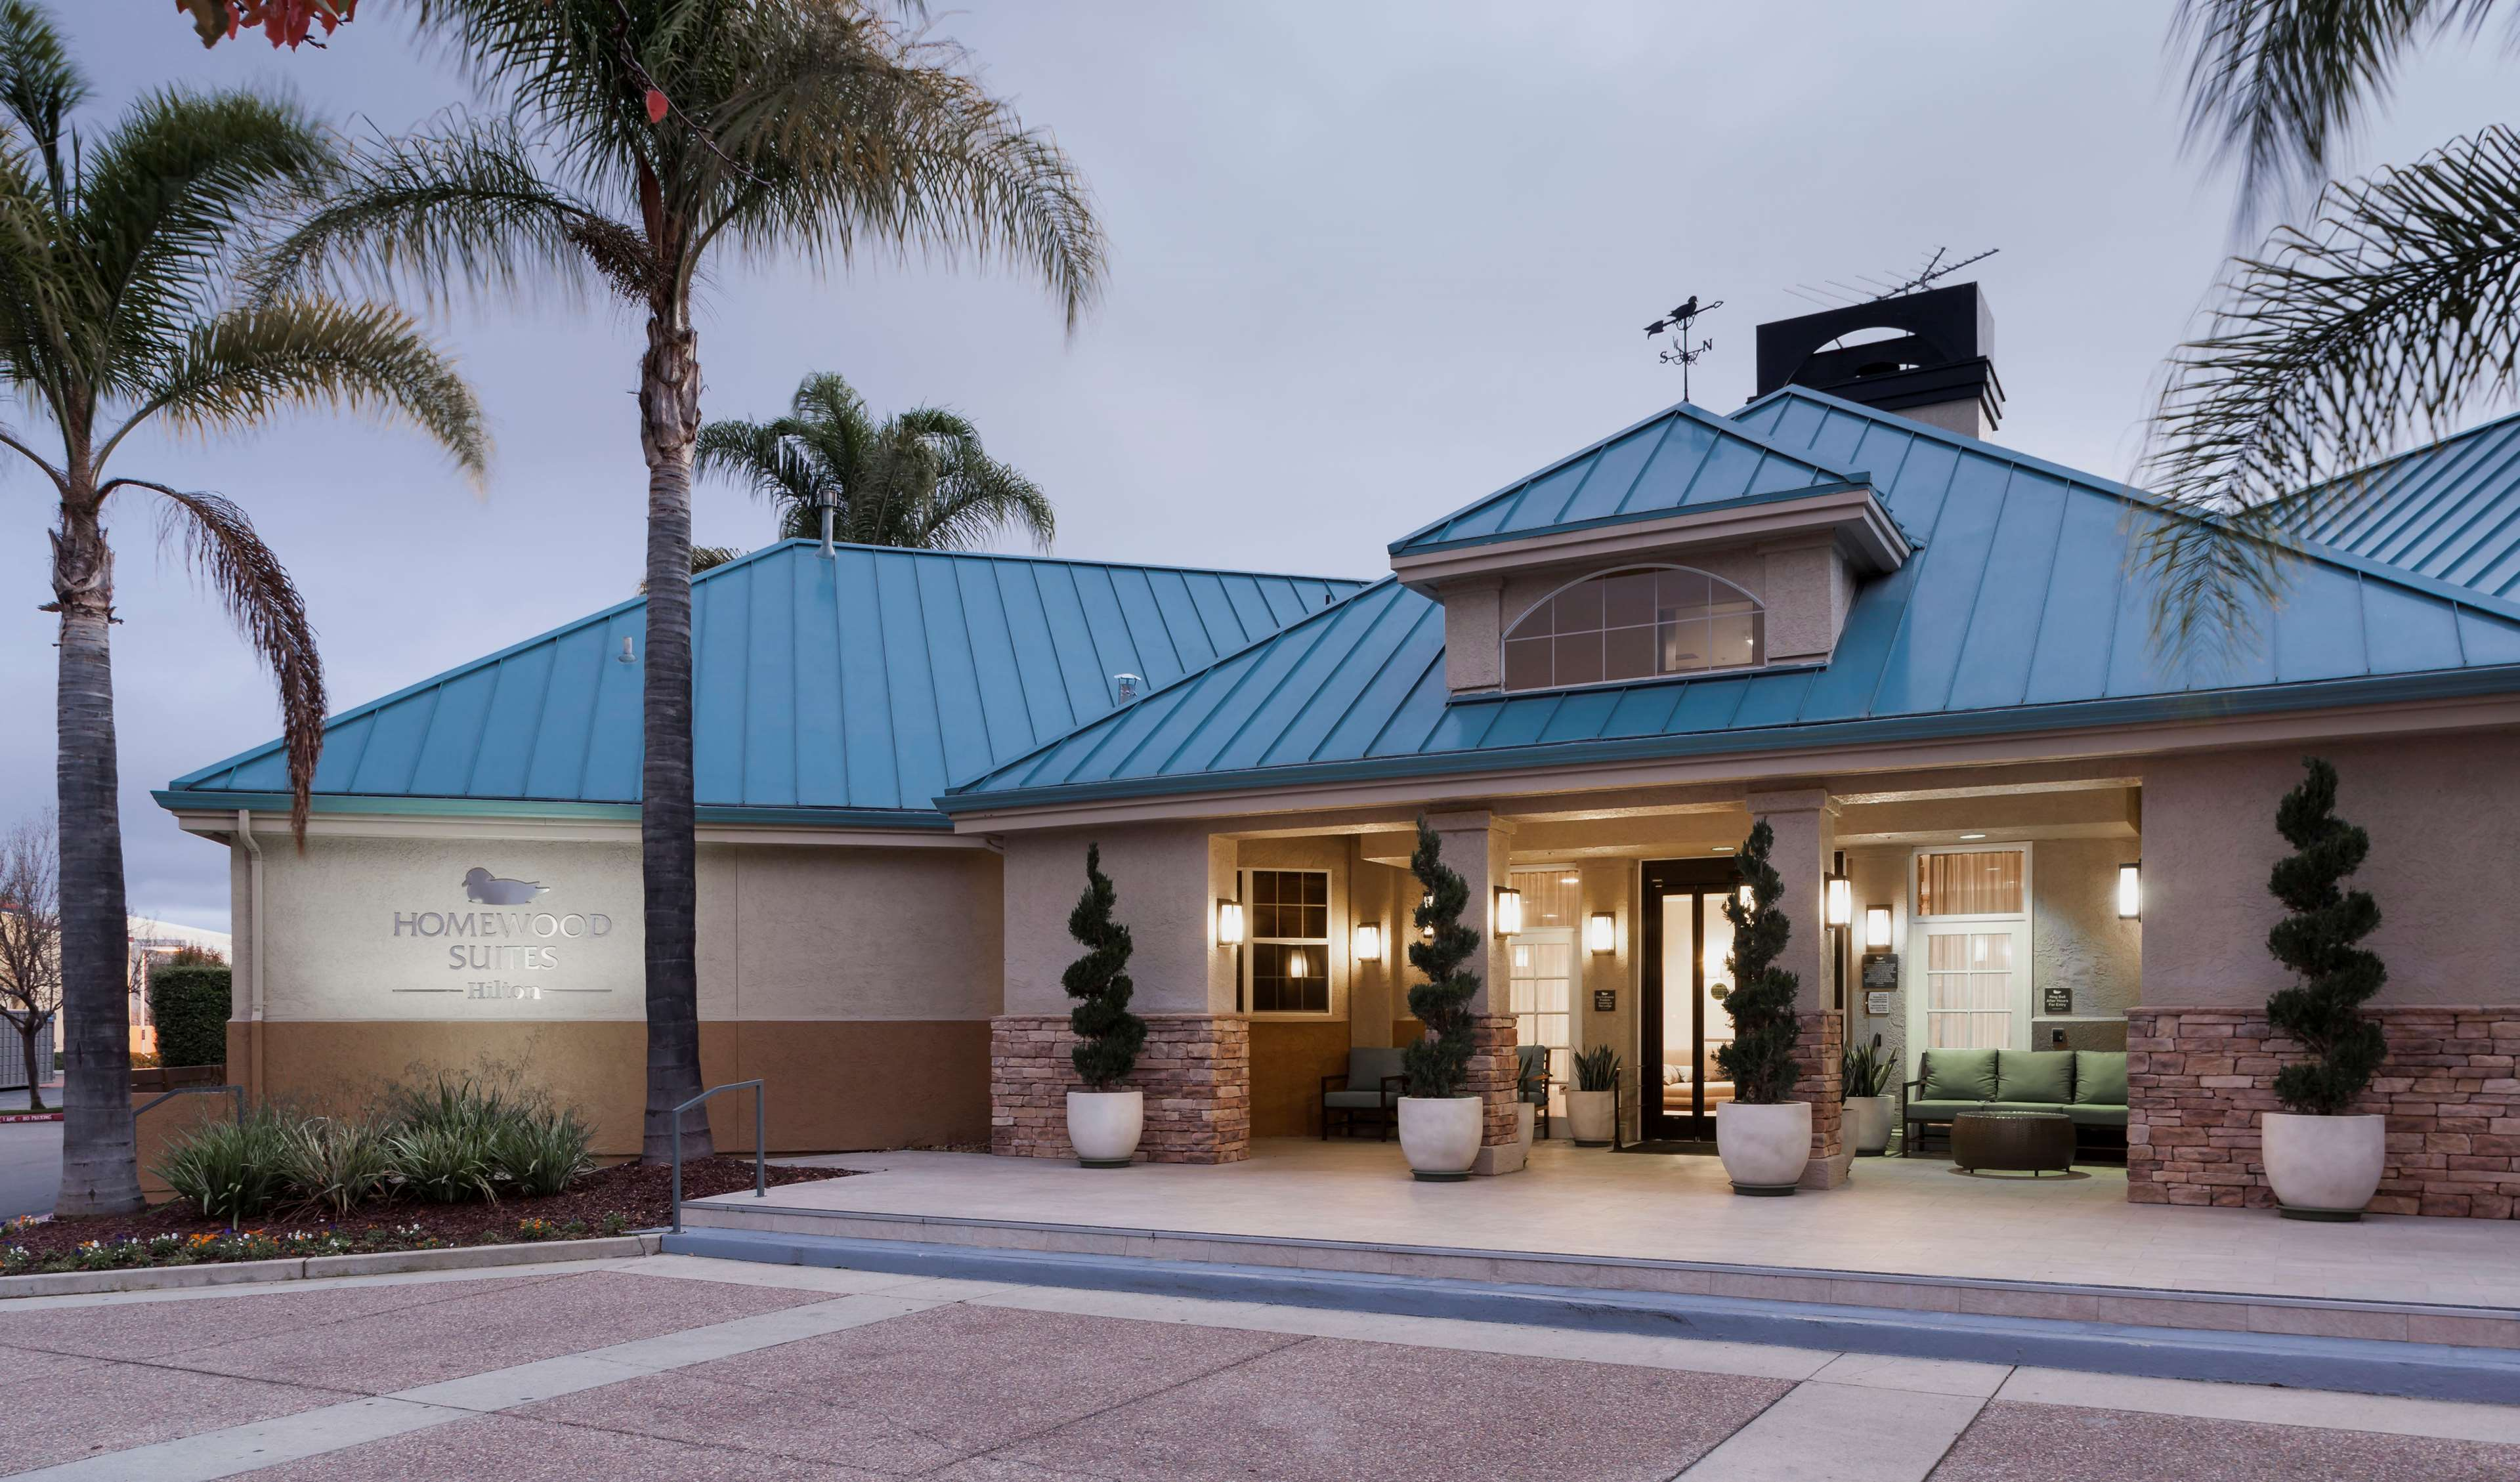 Homewood Suites by Hilton San Jose Airport-Silicon Valley image 0